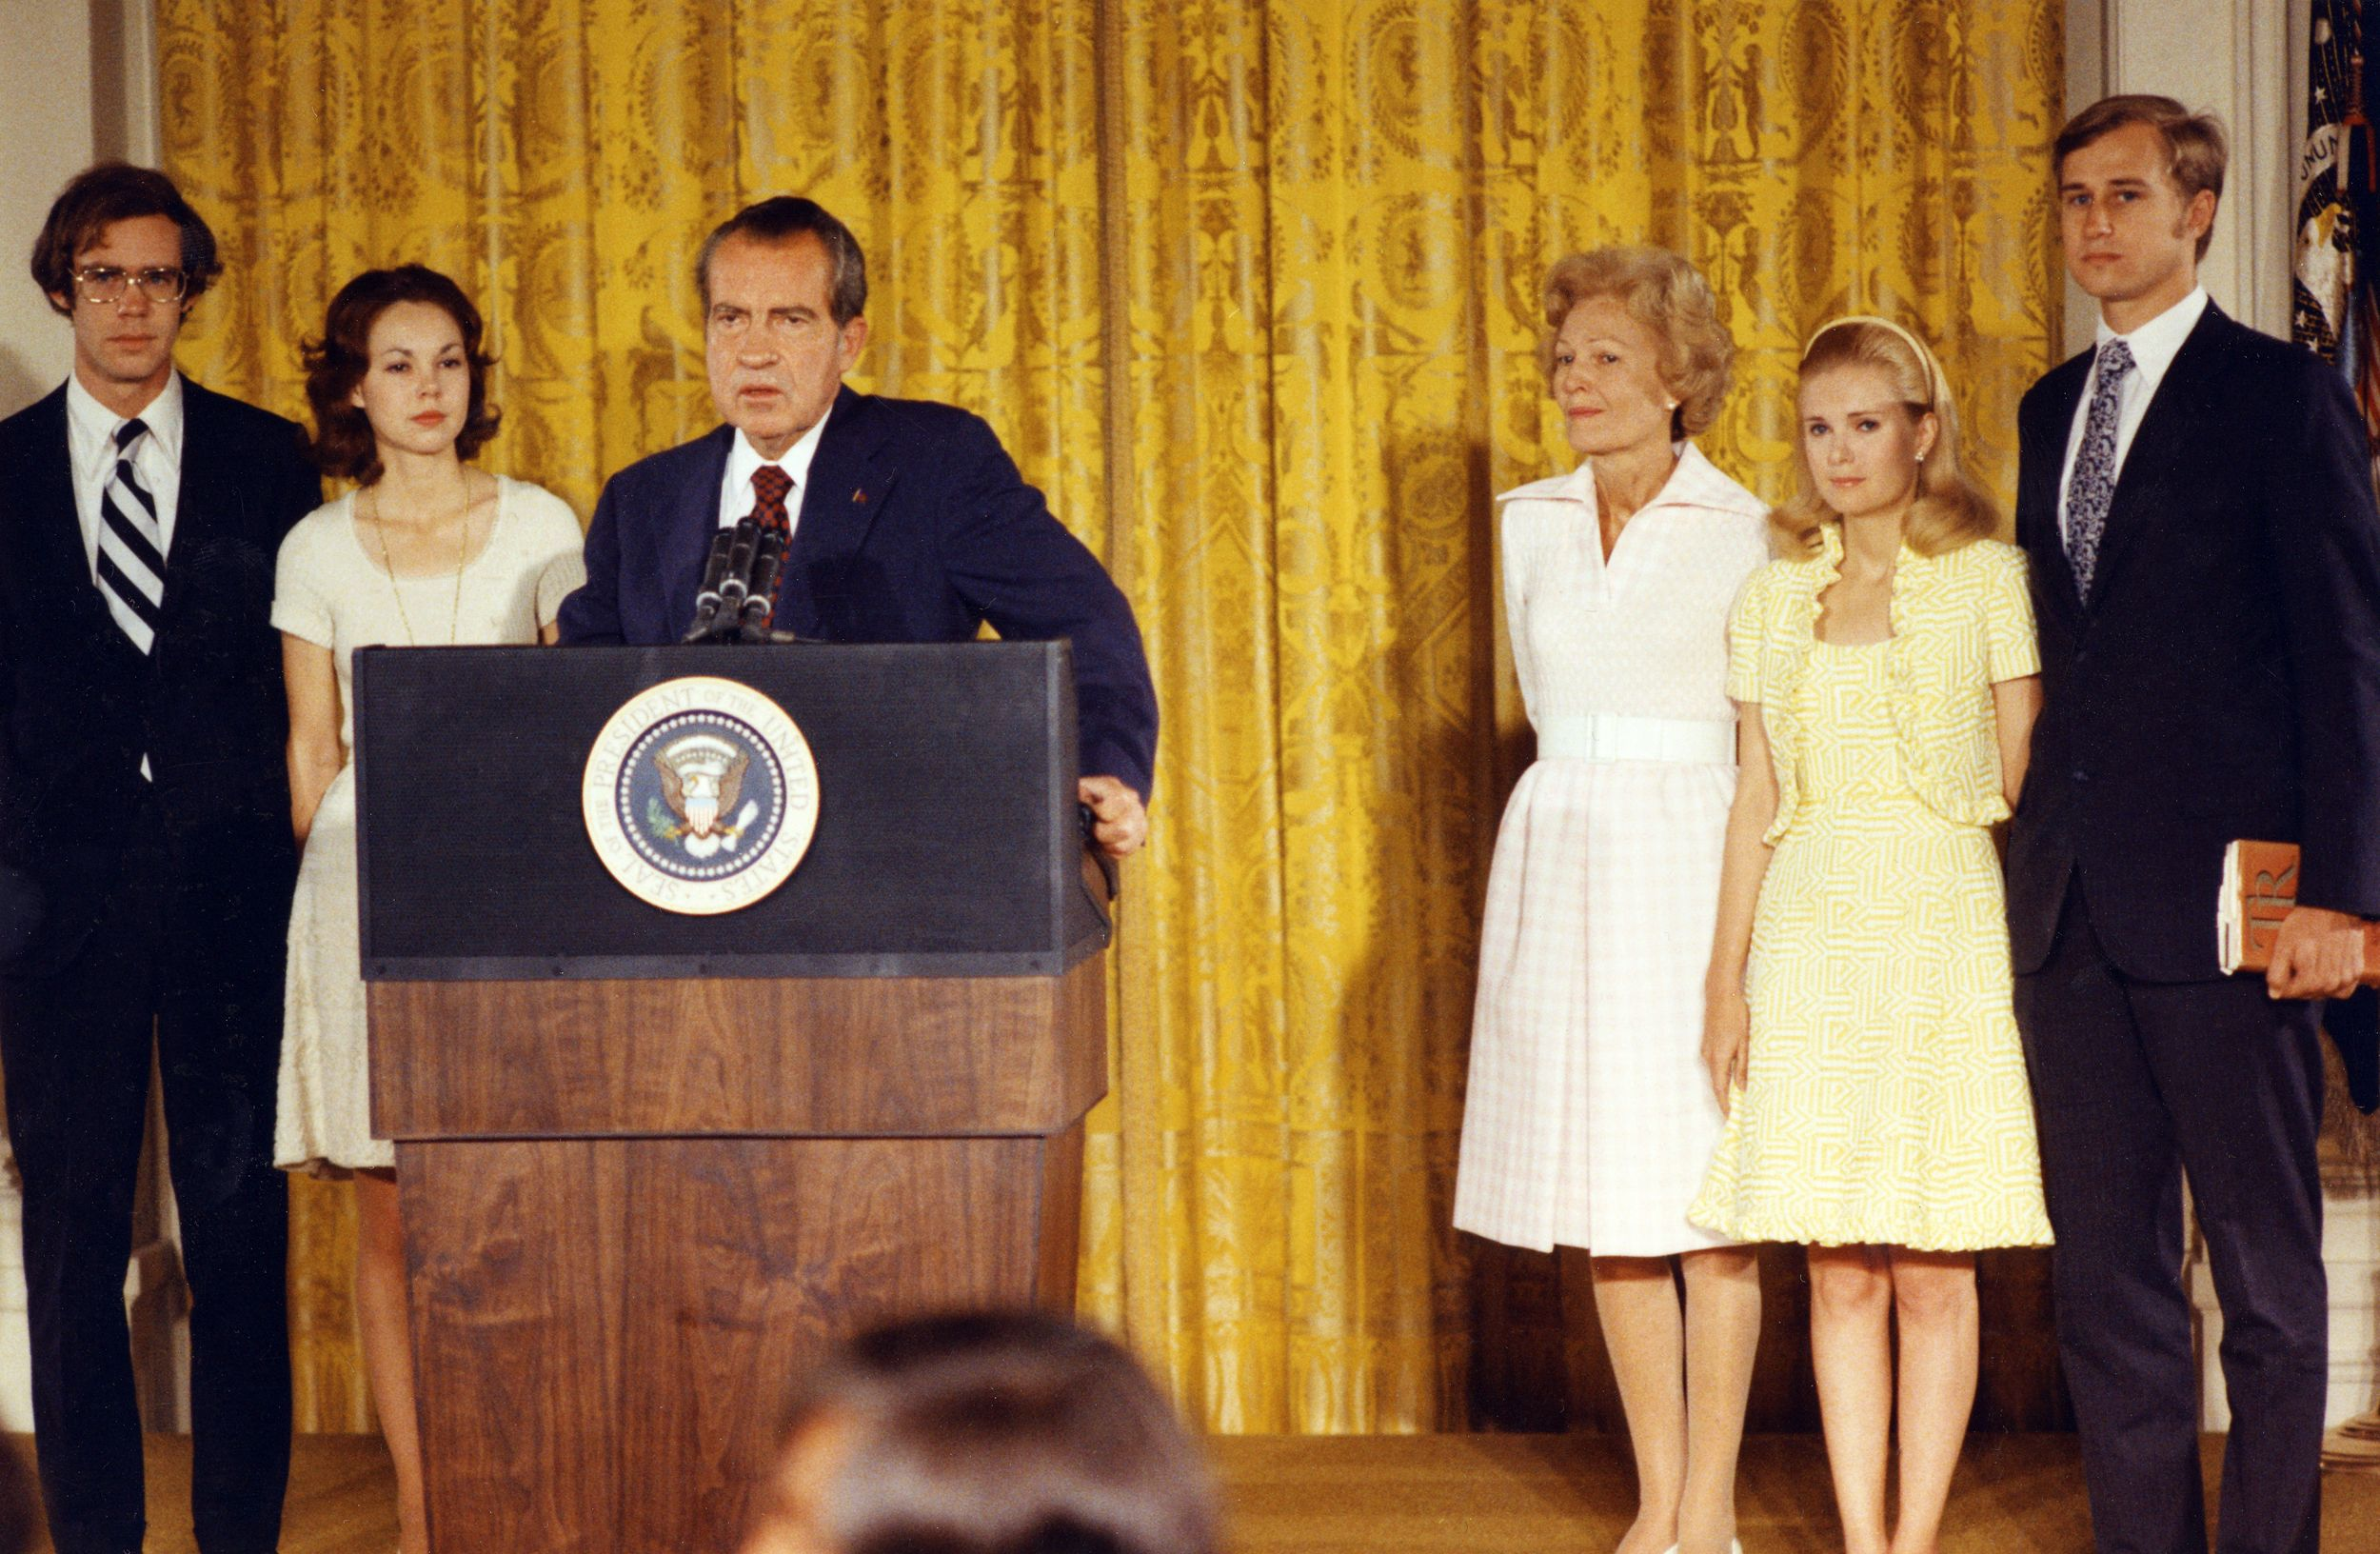 President Richard Nixon bids farewell to the White House staff in 1974. (White House/AFP/Getty Images)